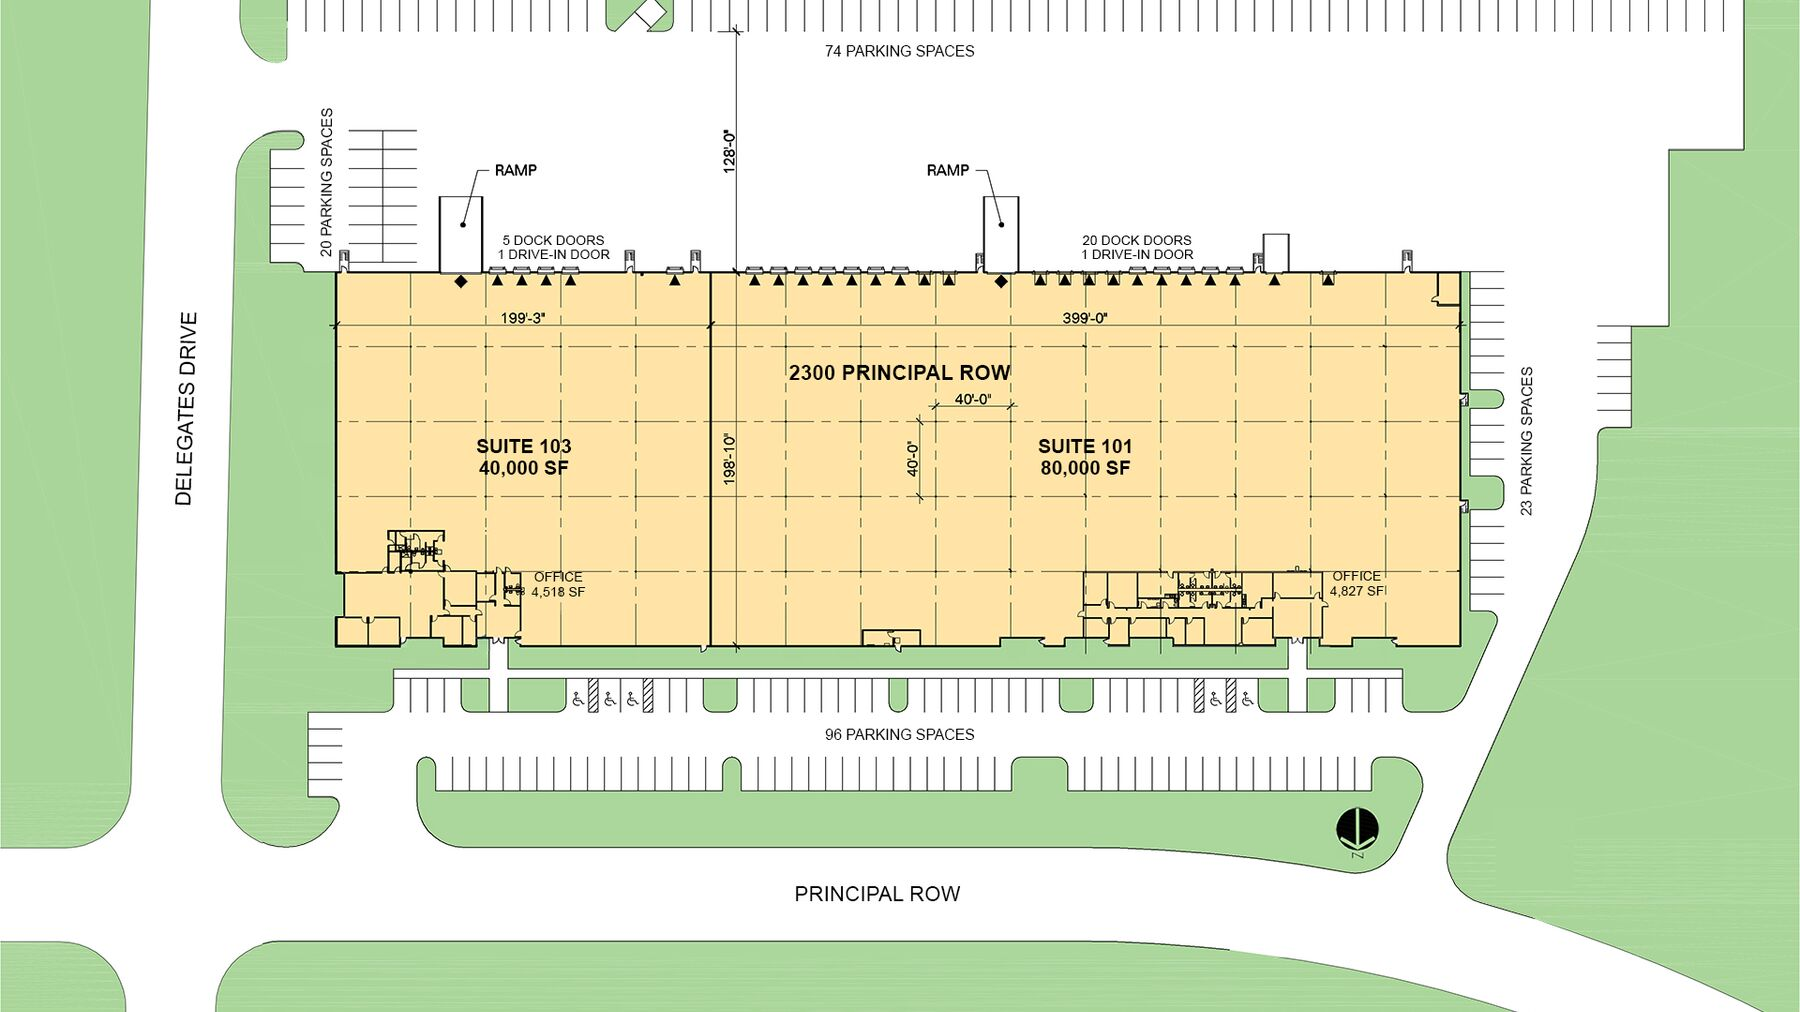 DPM-Prologis-Orlando-Central-Park-South_2300-Principal-Row_Flyer-Plan.jpg